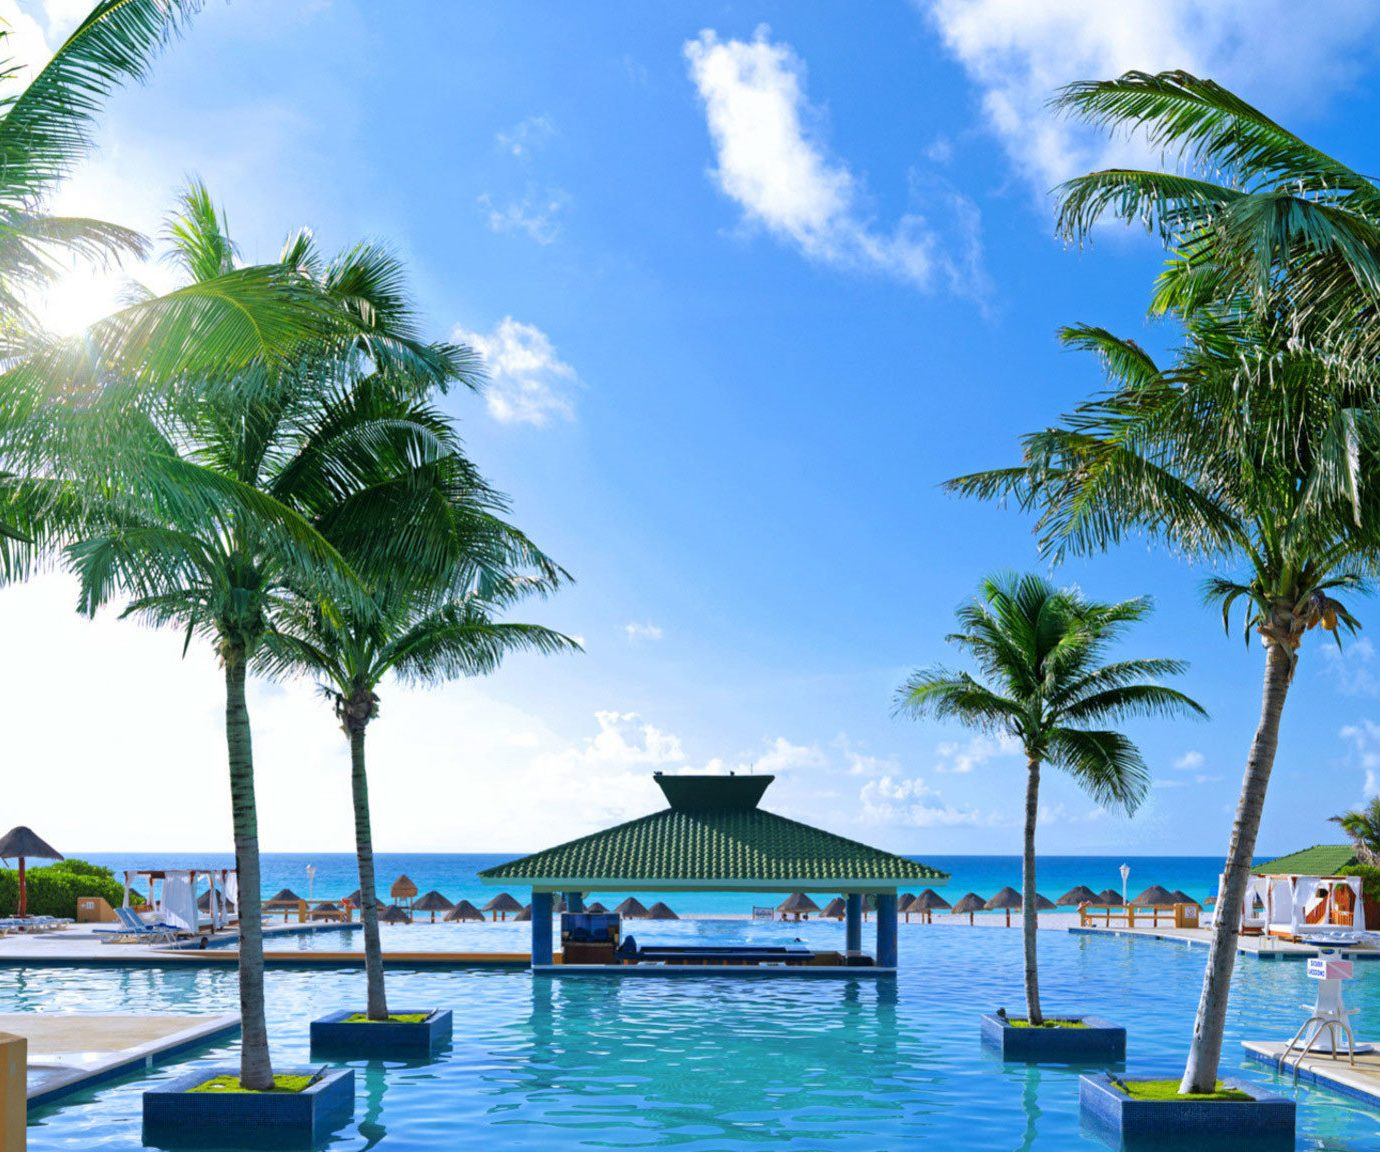 tree sky palm water umbrella chair Resort Beach leisure caribbean swimming pool Pool lined arecales plant tropics resort town Lagoon lawn palm family Sea Villa shade sunny swimming